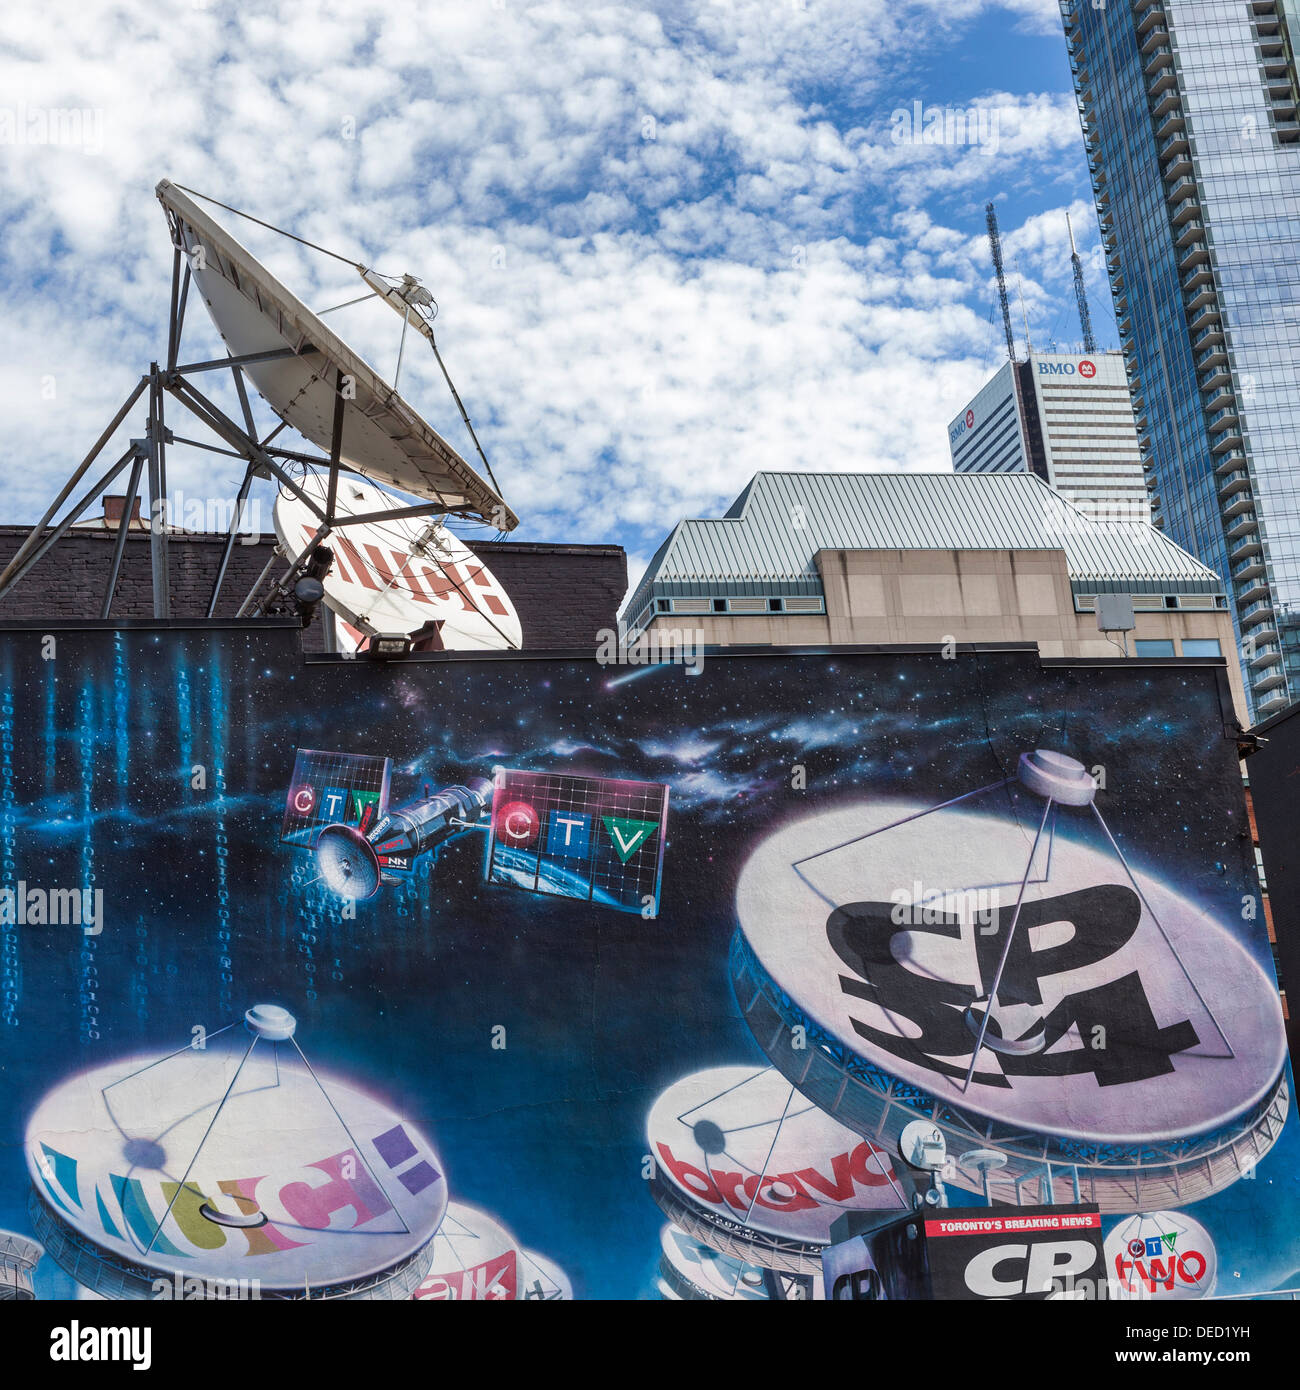 Mural advertisement with satellites and satellite dishes